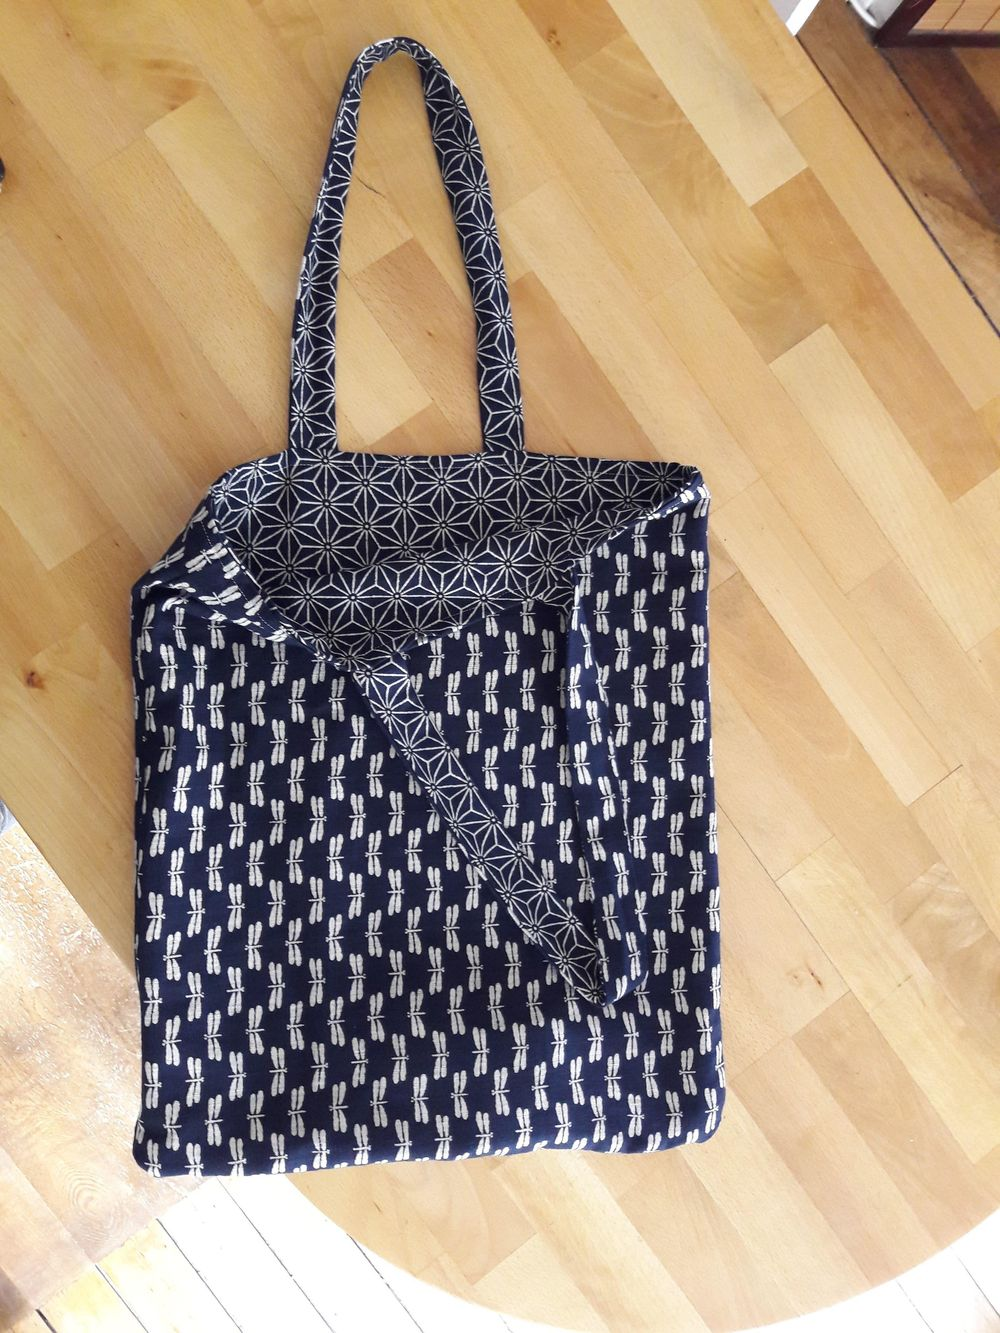 Tote Bag in Japanese Fabric - image 1 - student project